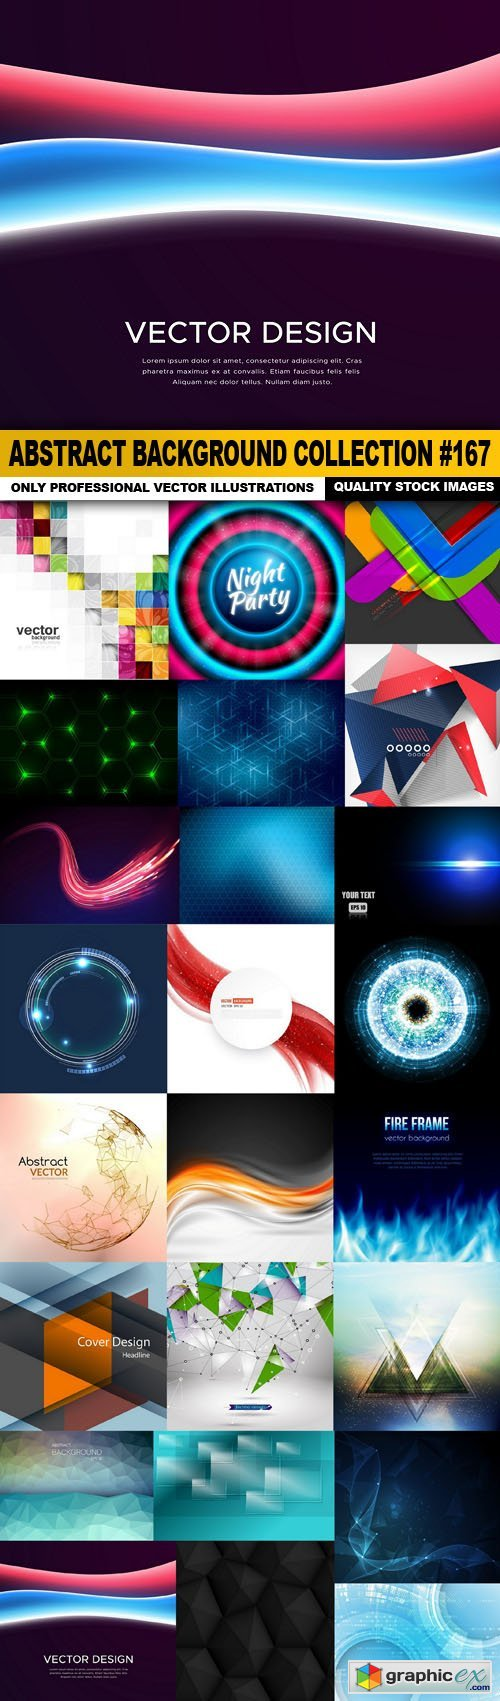 Abstract Background Collection #167 - 25 Vector